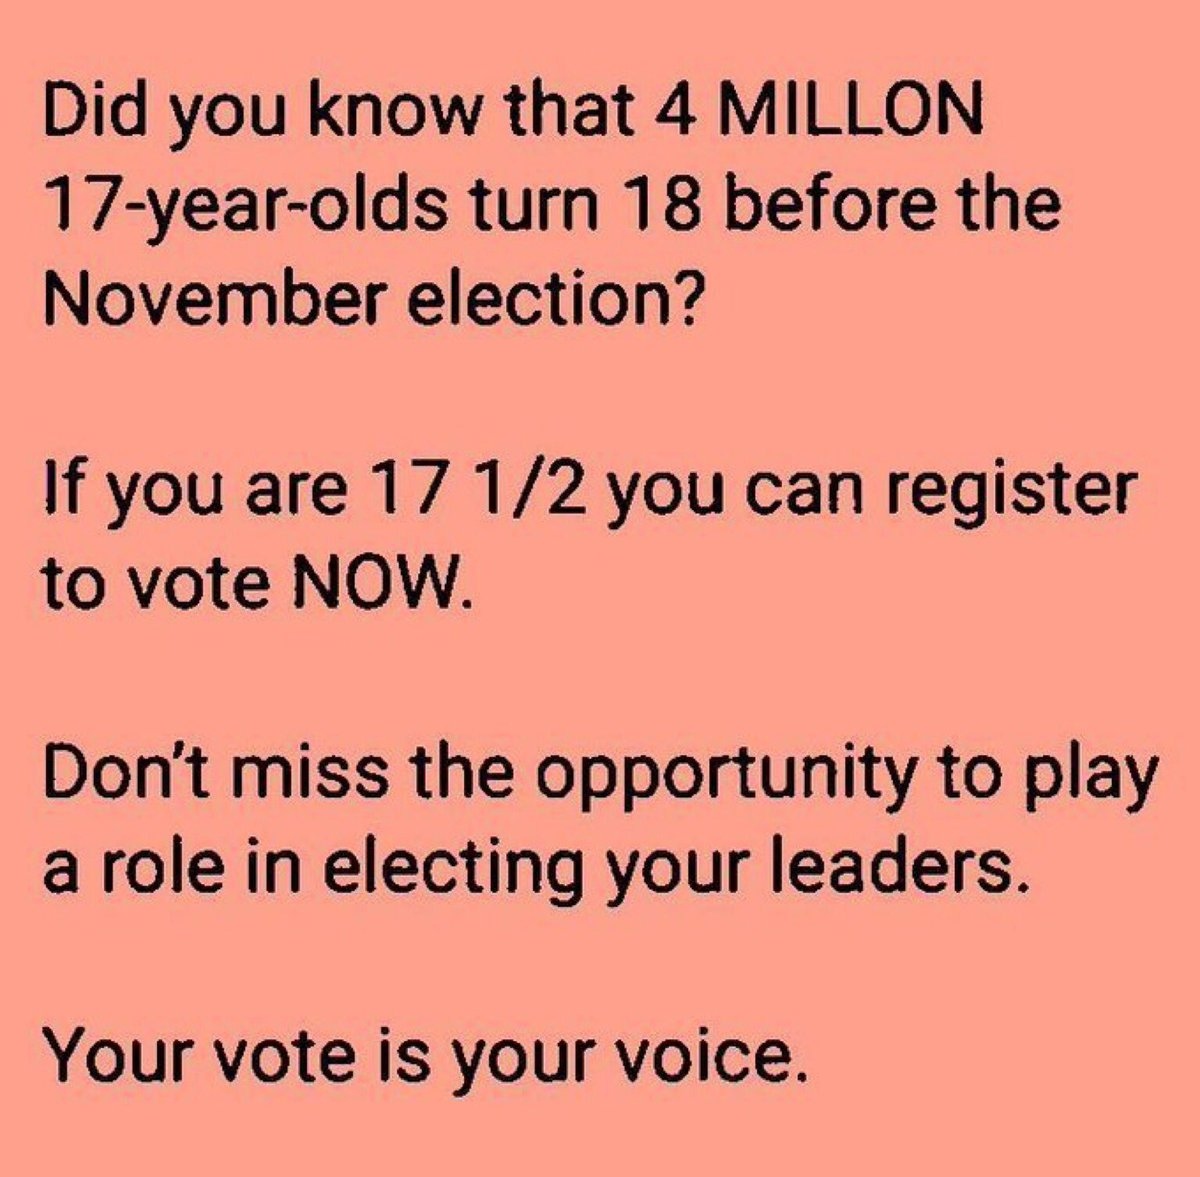 @NY_runaway There are 4 million 17 yr olds turning 18 by this November. This is why the republicans are focused on restricting and disenfranchising young voters. Un-America! #OneVoice1 #WTP2020 #wtp2020Heather Let's vote out GOP for our democracy! #VoteBlueToSaveAmerica